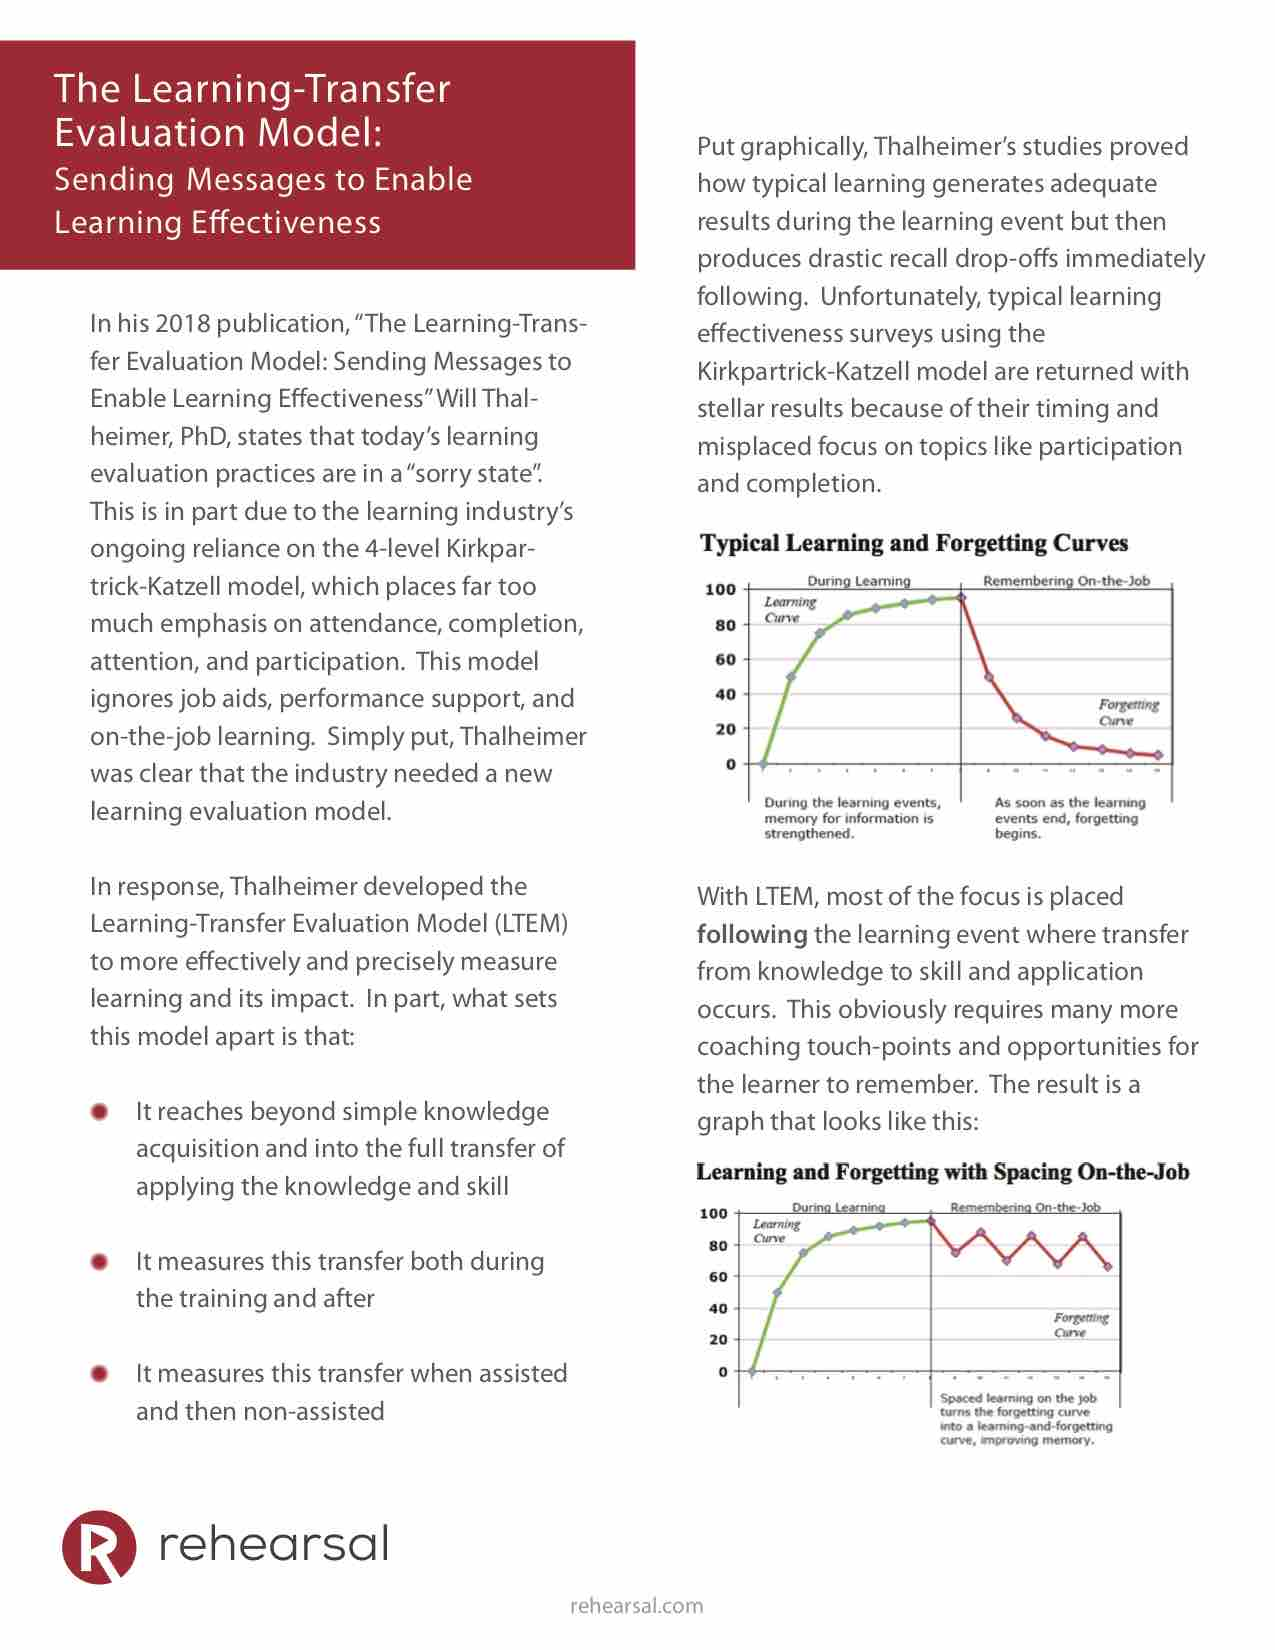 The Learning-Transfer Evaluation Model White Paper Cover